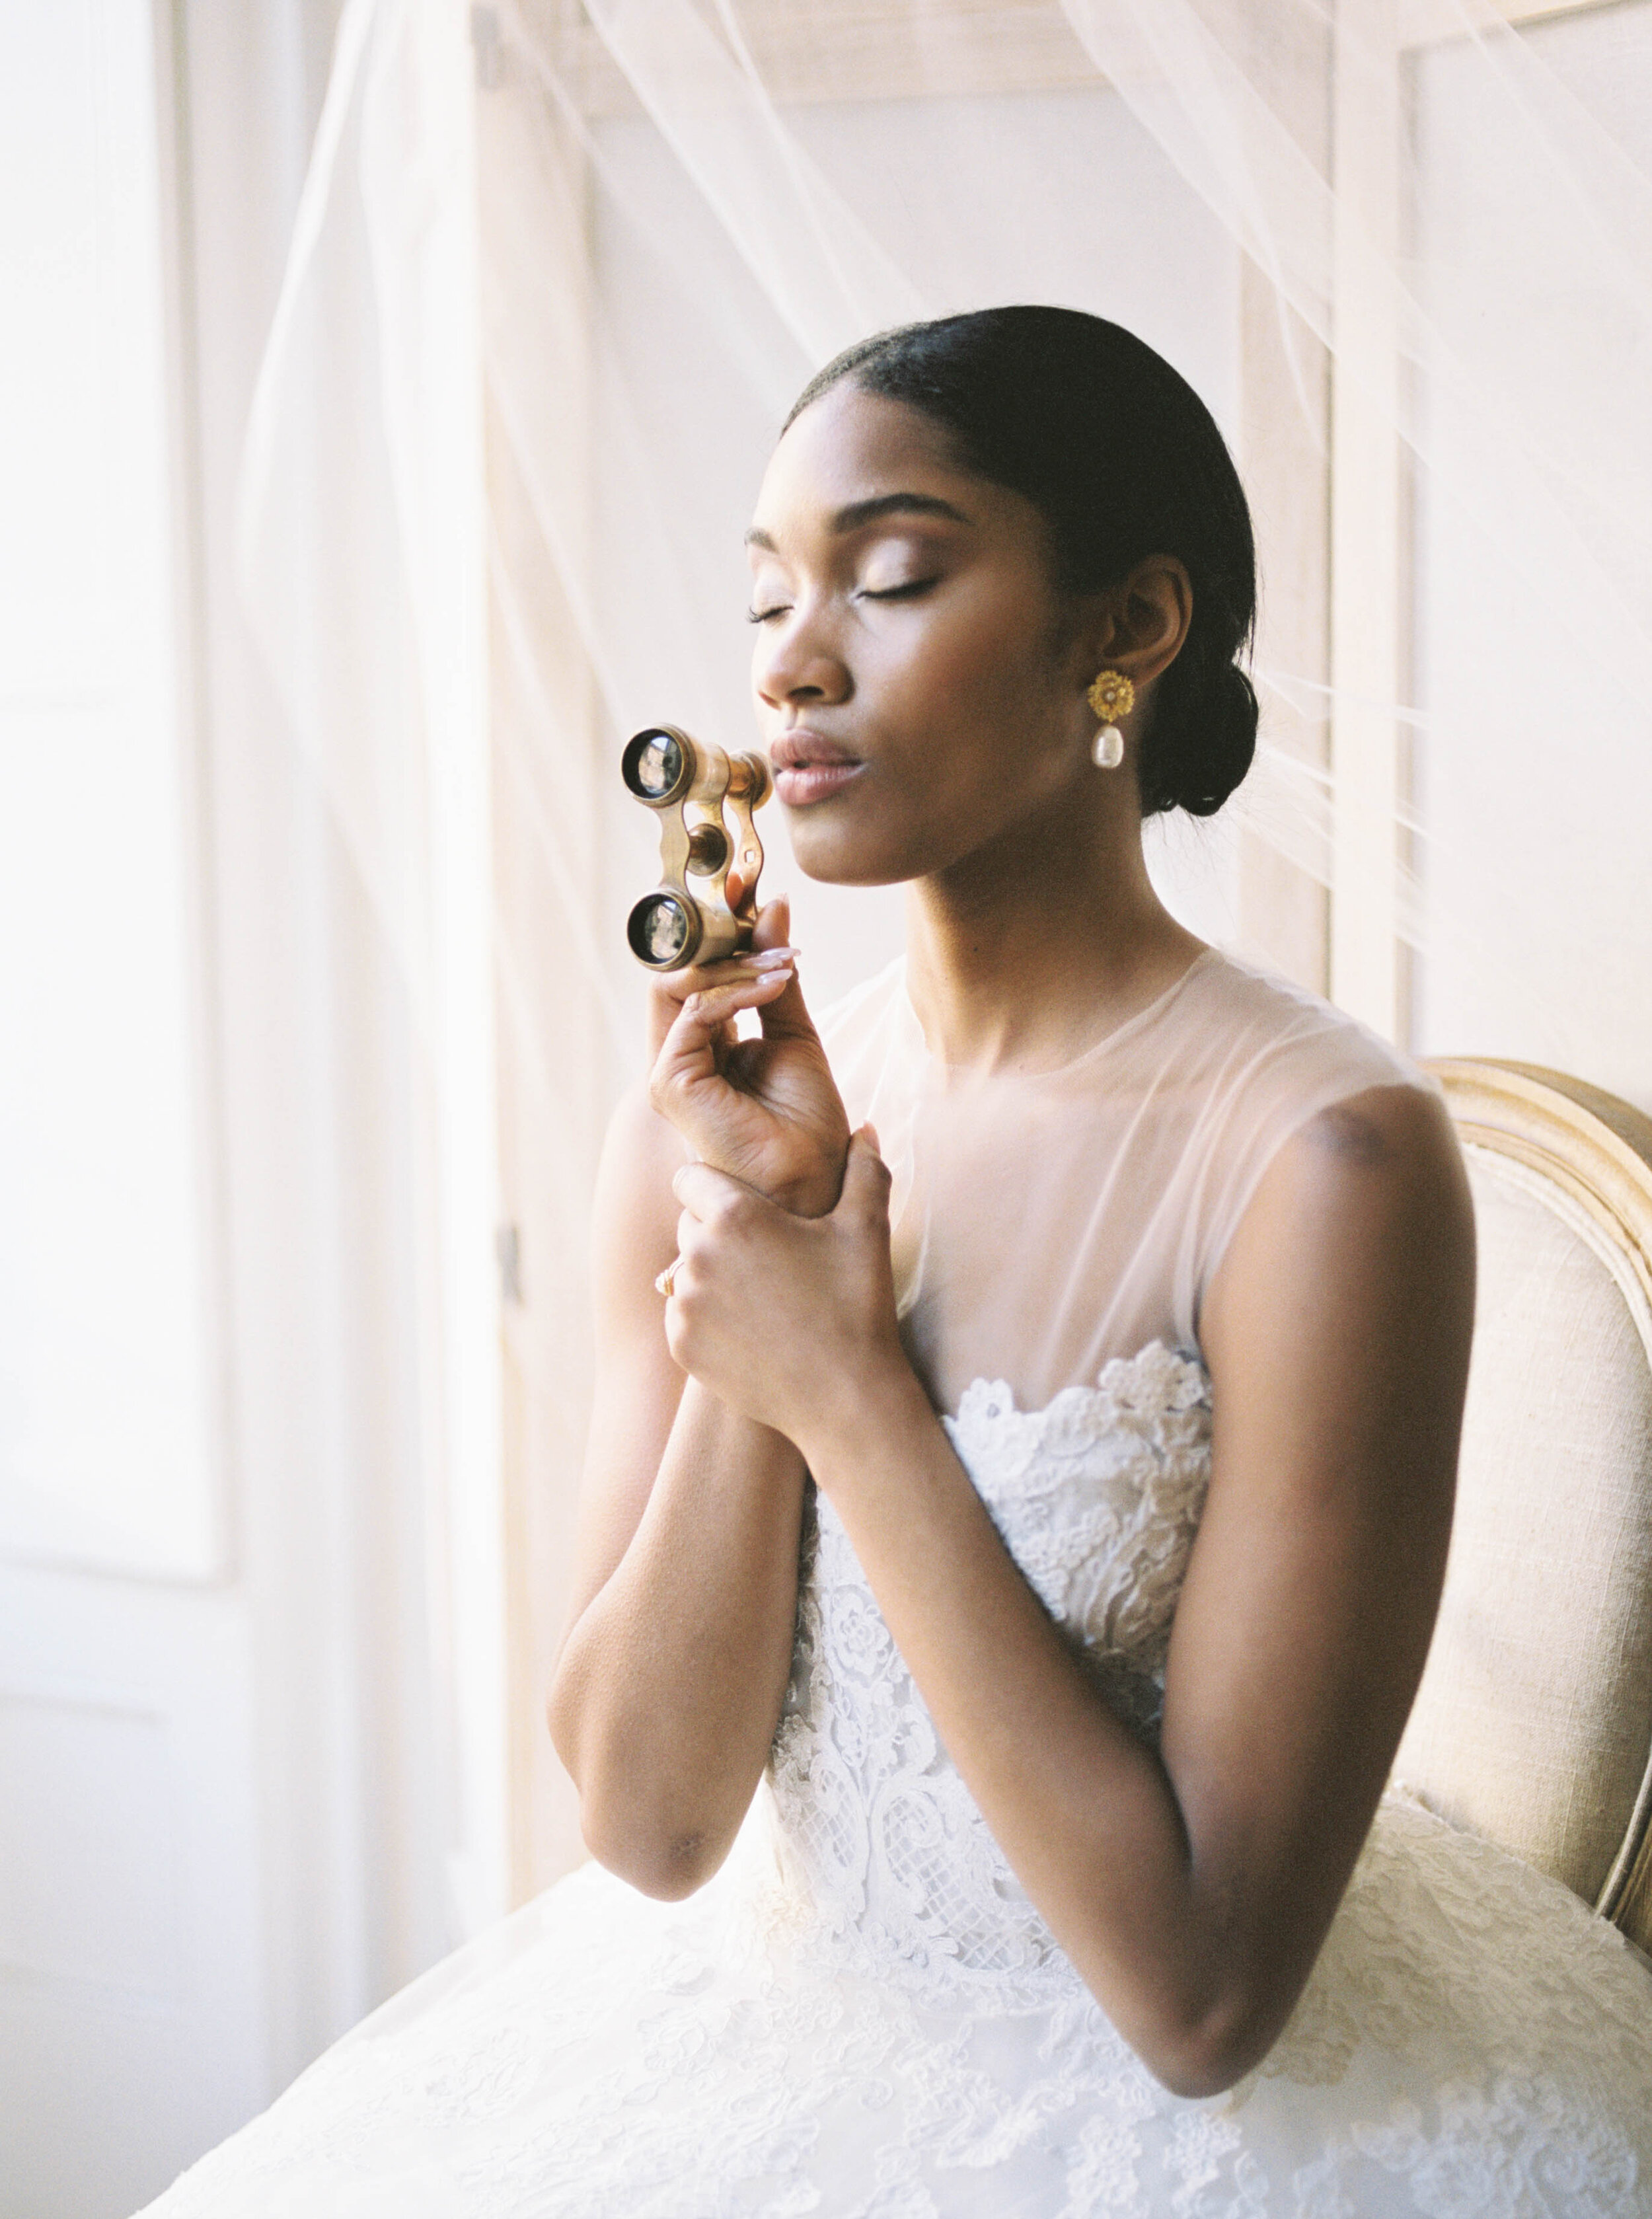 New York City Bridal Editorial featuring Reem Acra wedding gown and monochrome white bouquet with opera glasses by Liz Andolina